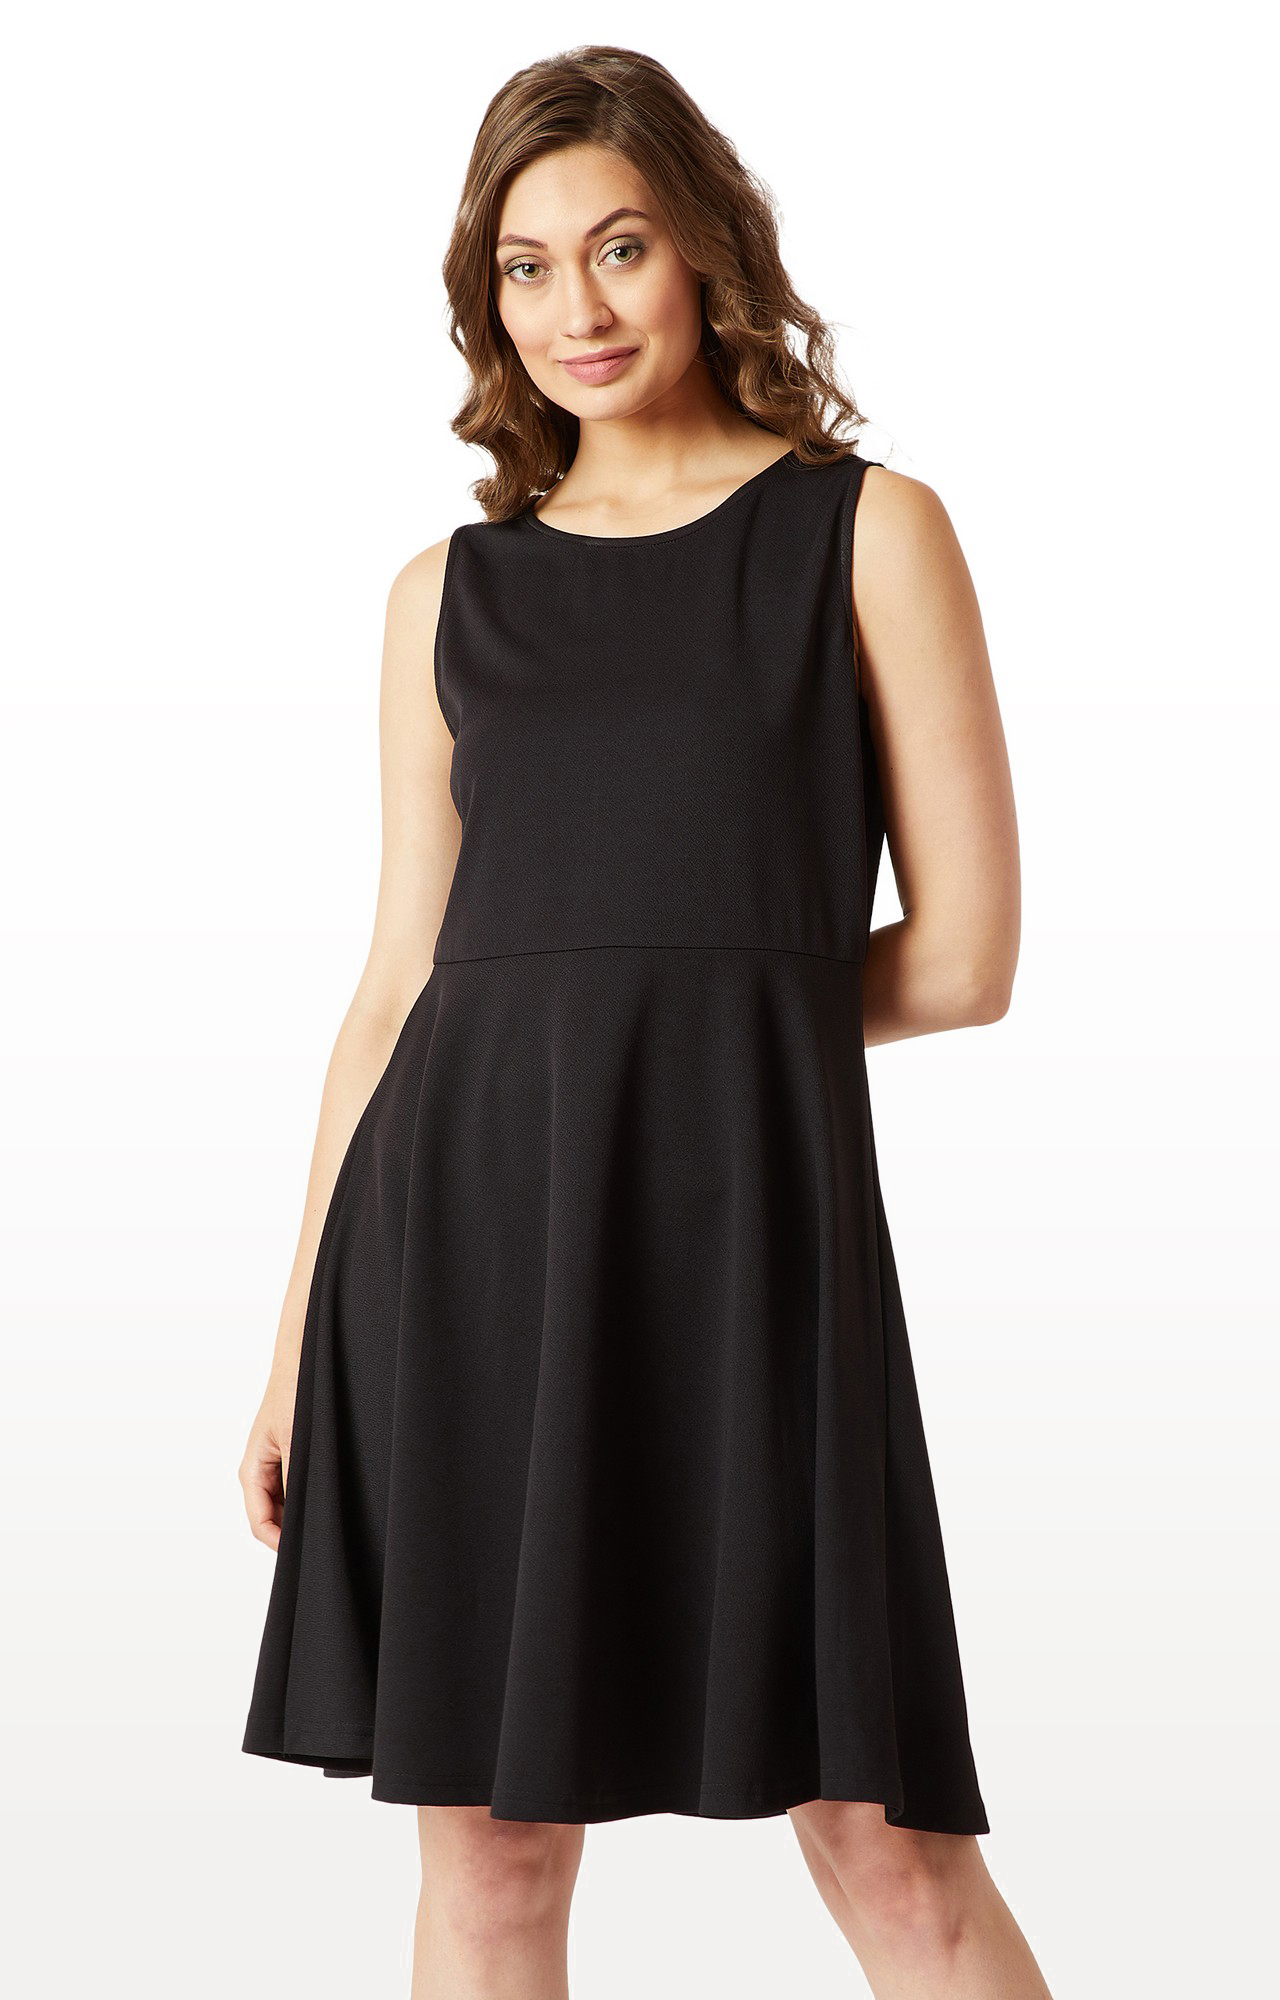 MISS CHASE | Black Solid Back Cut Out Knitted Knee Long Skater Dress